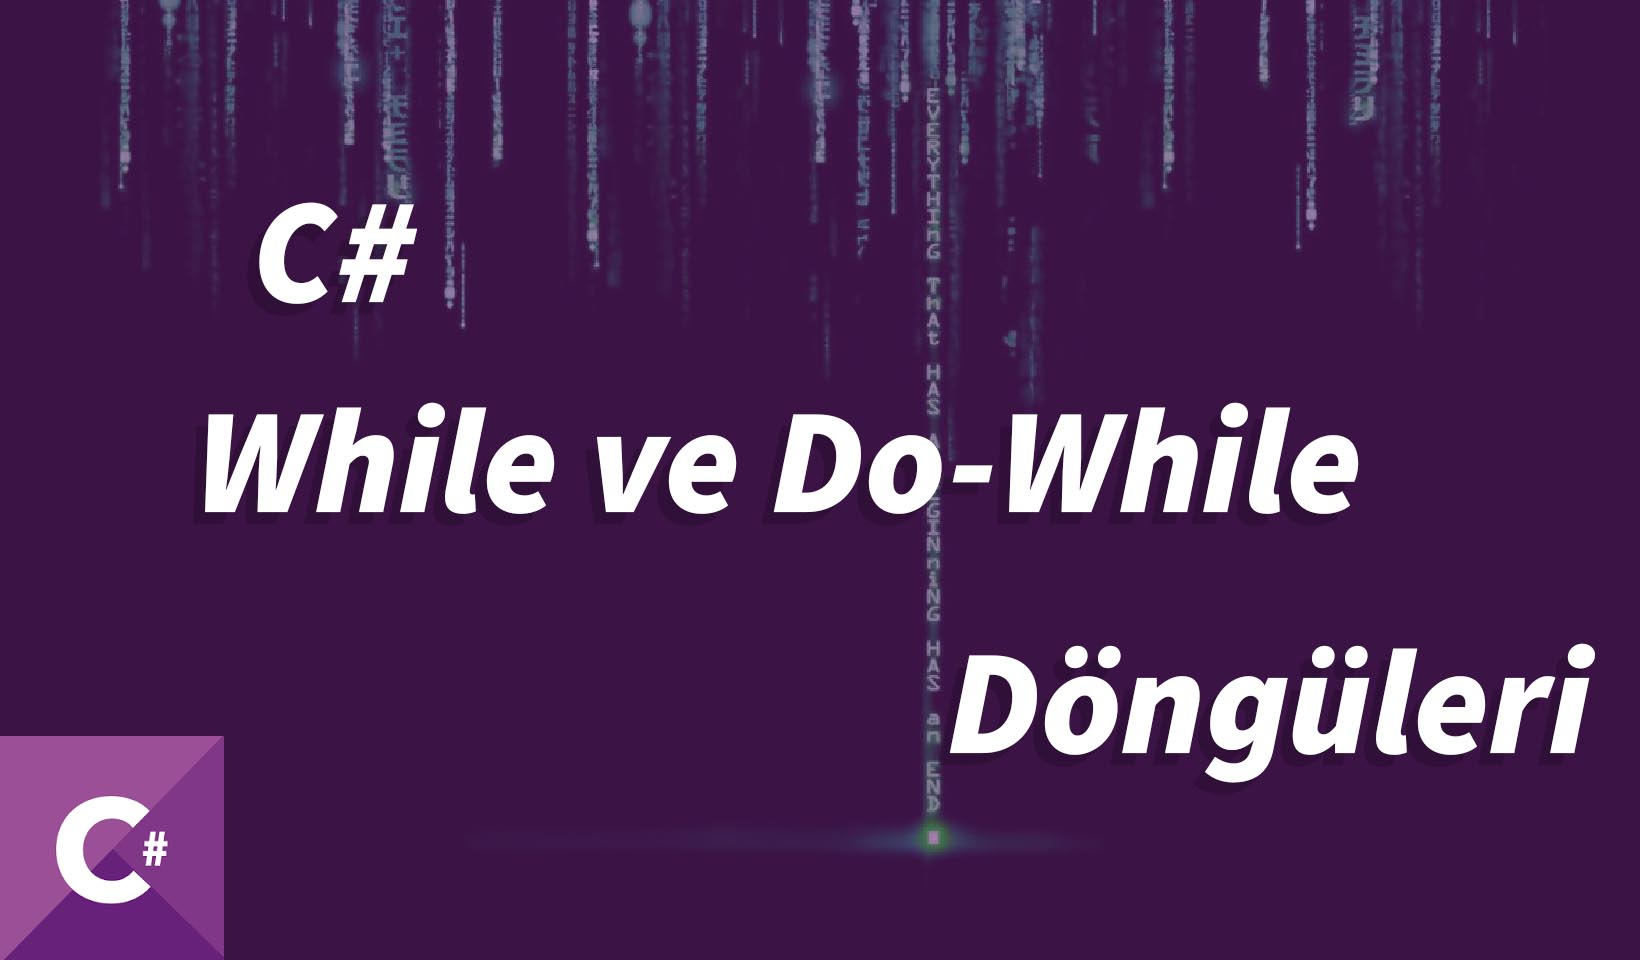 c#, c# while, c# do while, c# döngüler, c sharp döngüler, c sharp while, c sharp do while